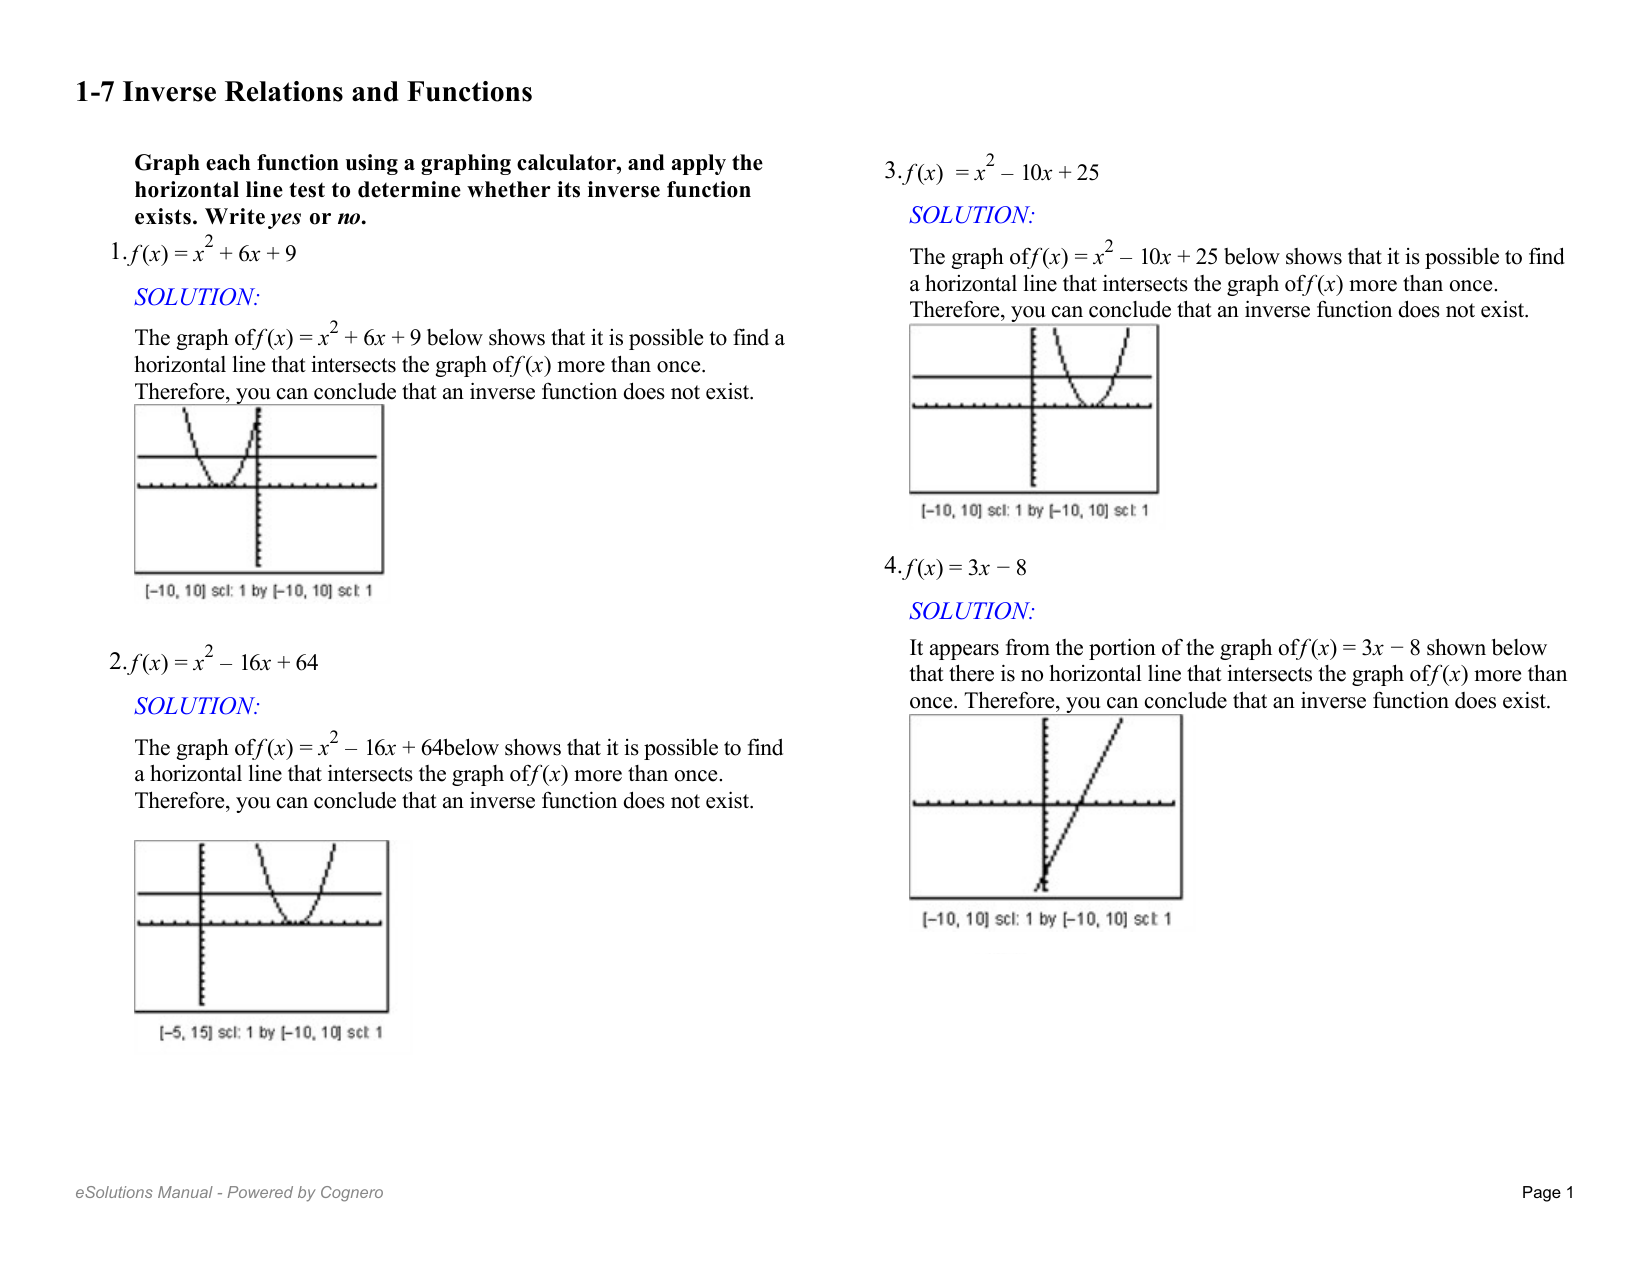 1-7 Inverse Relations and Functions